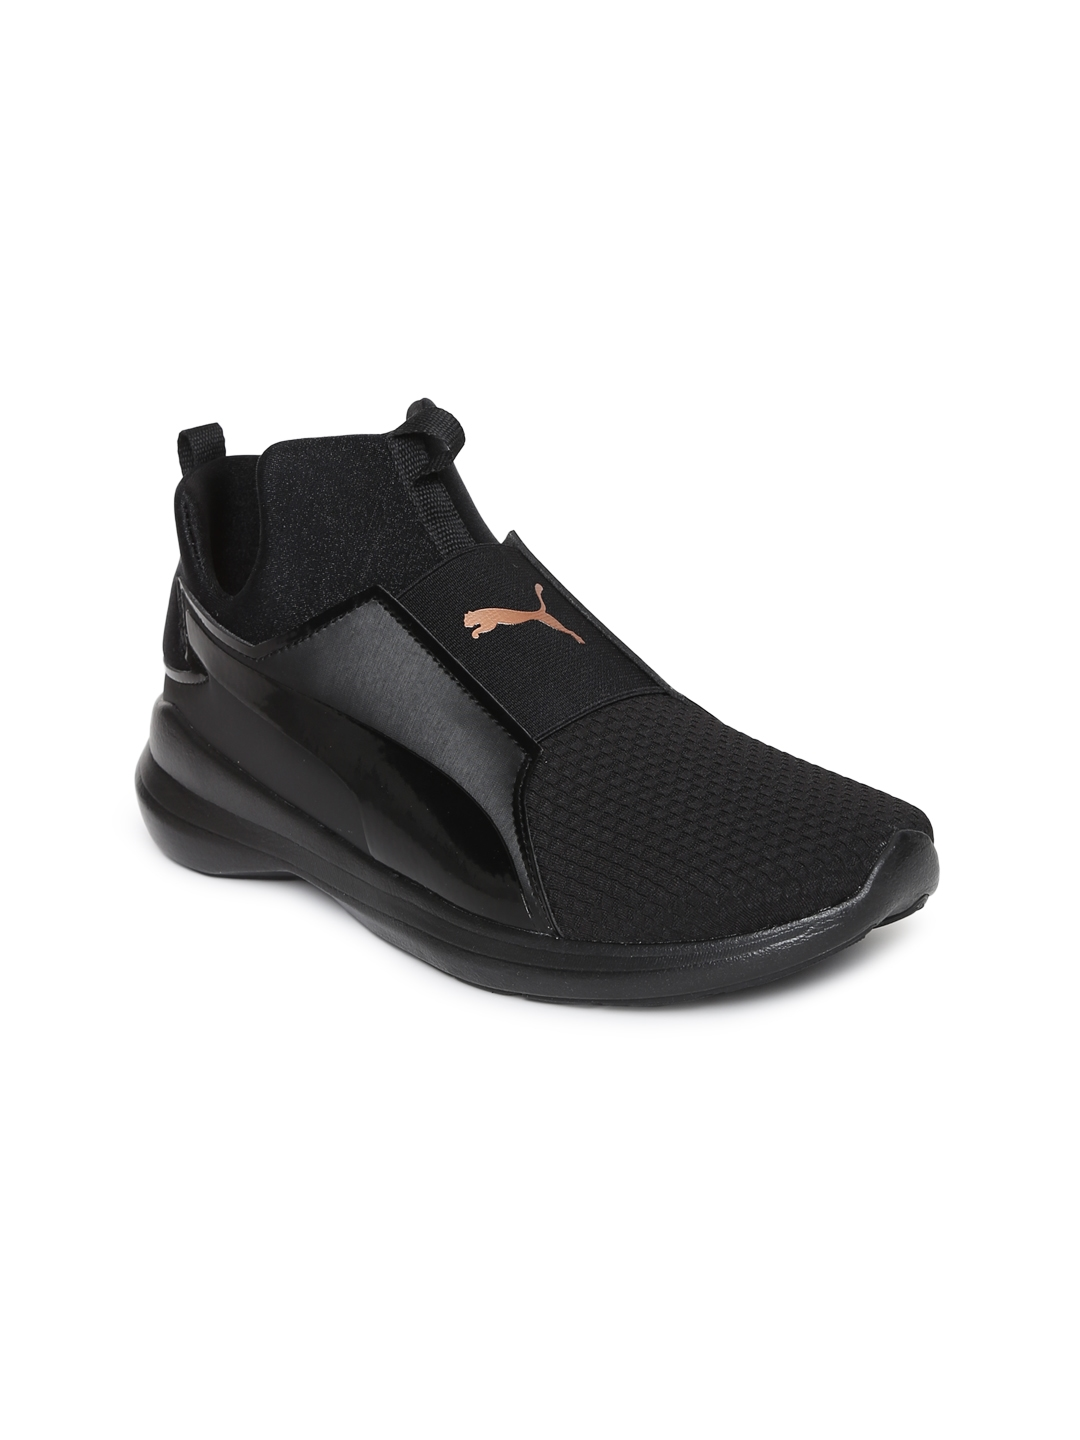 949e3c4133fb02 Buy Puma Rebel Mid Wns EP - Casual Shoes for Women 2429553